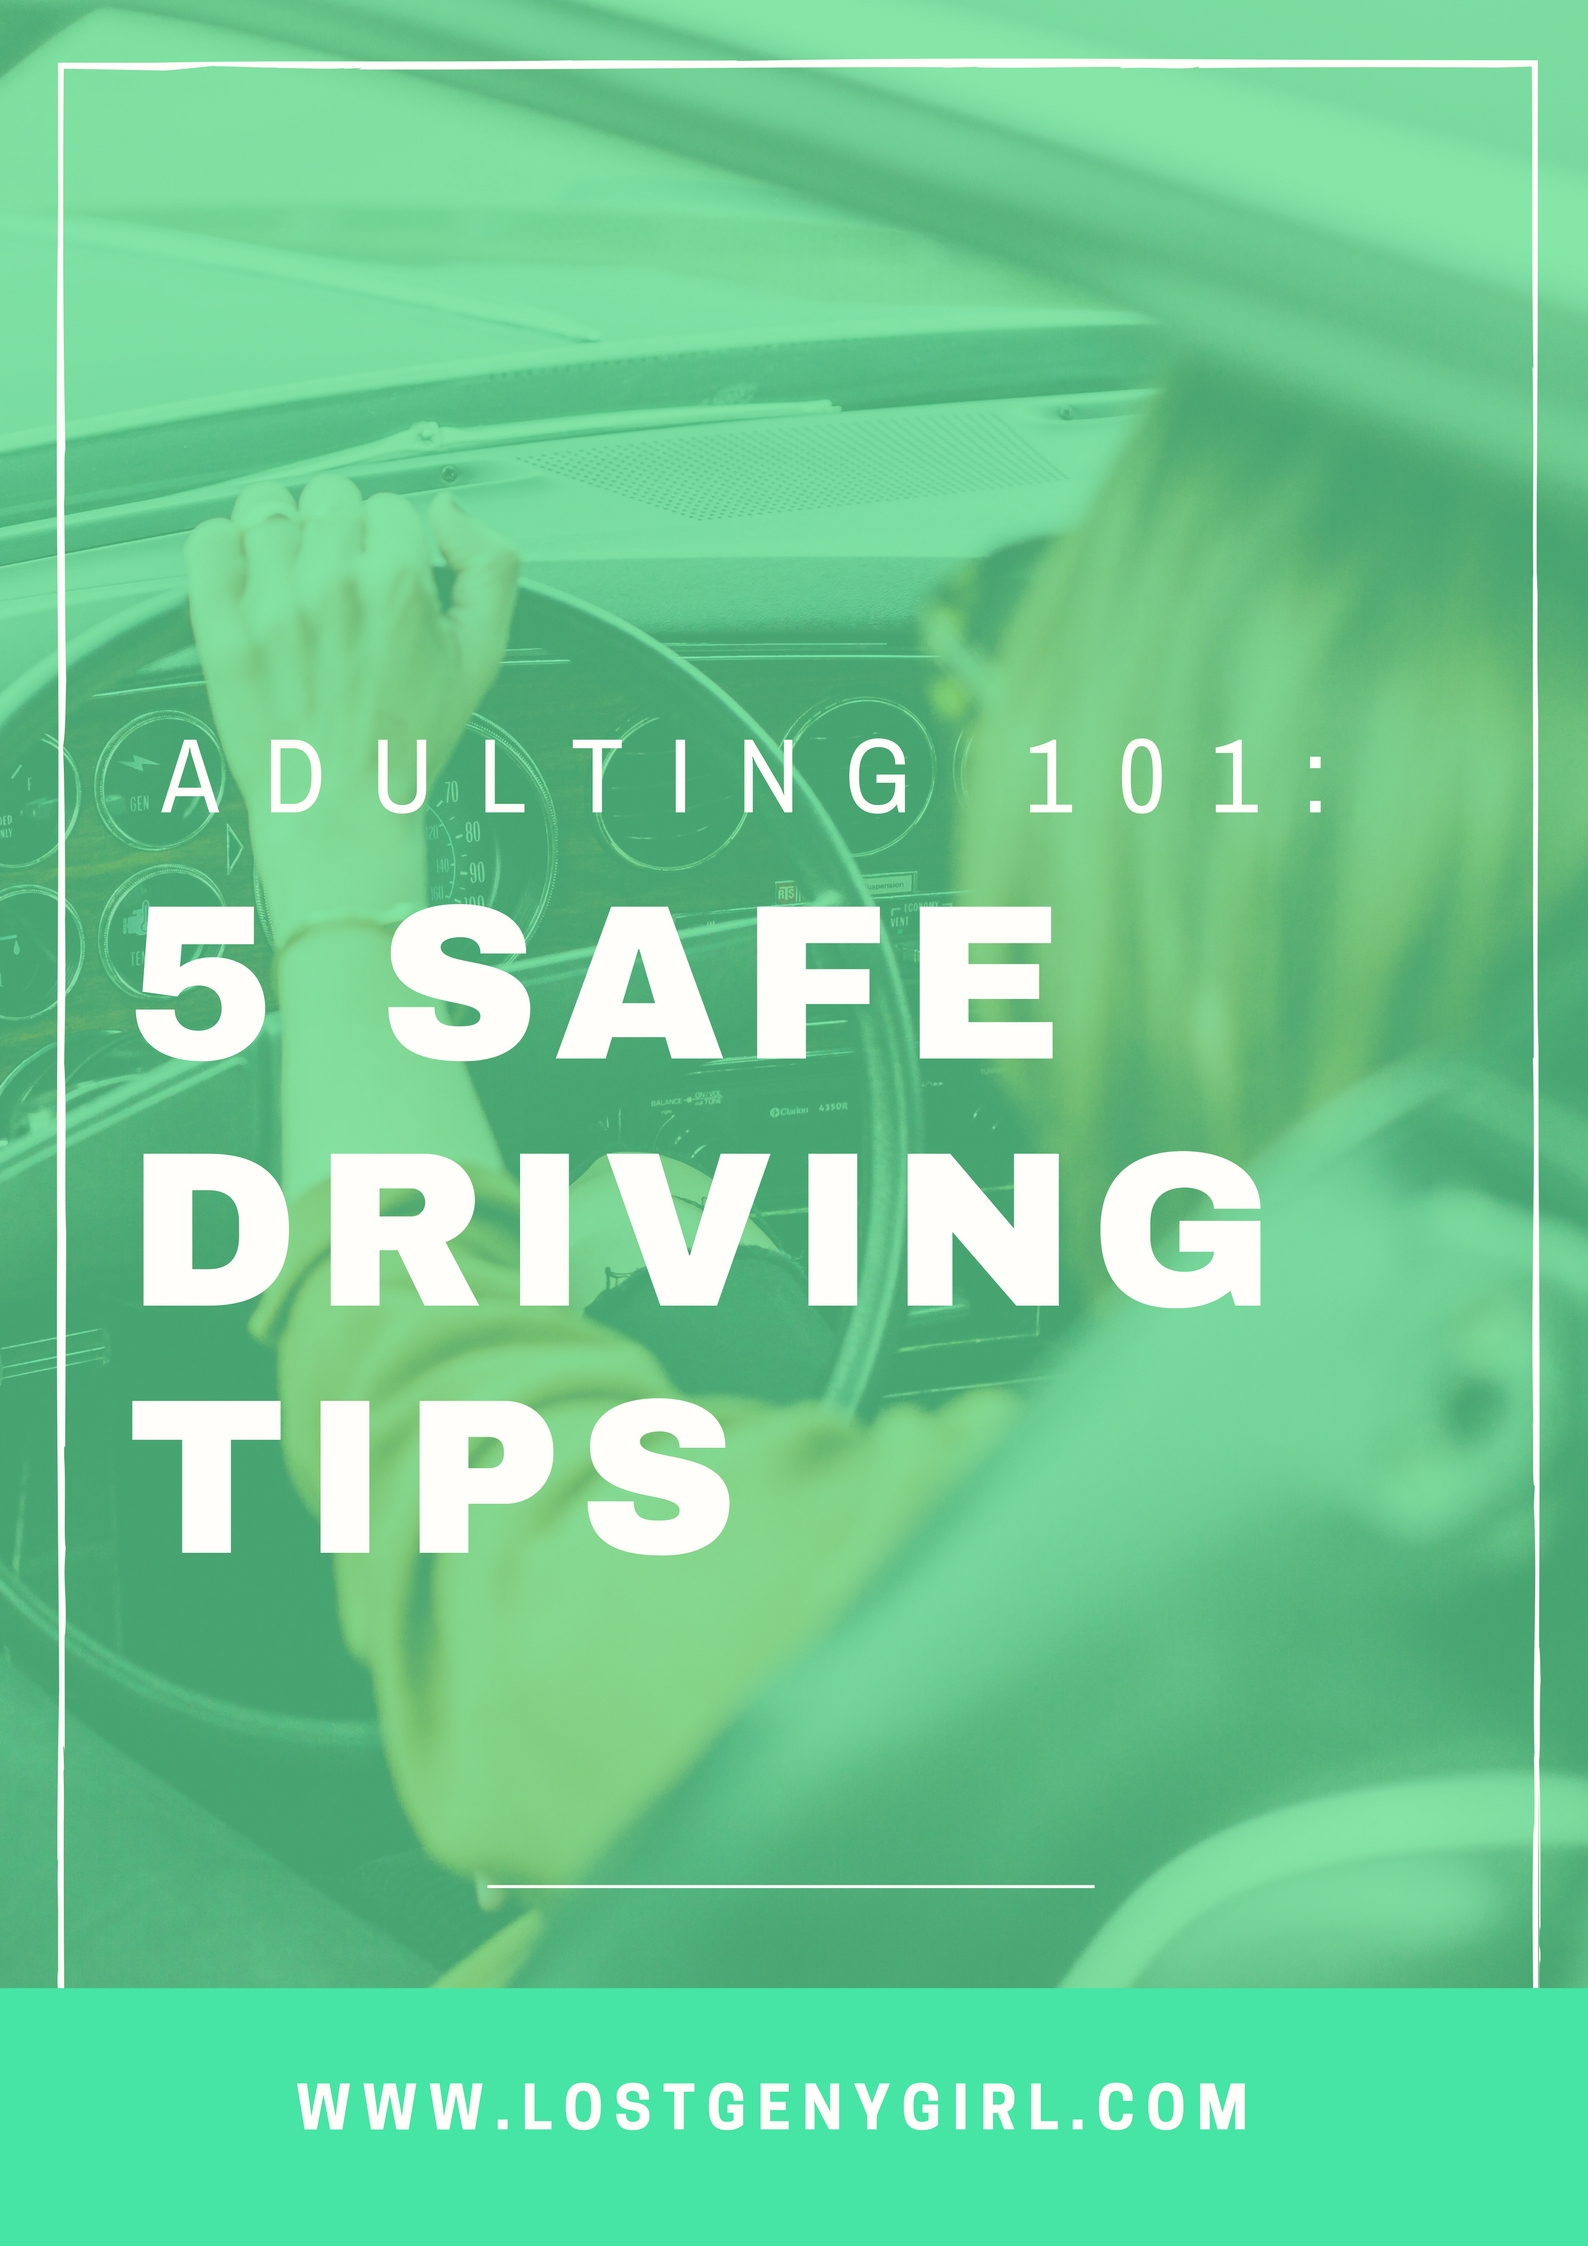 Adulting 101: 5 Safe Driving Tips